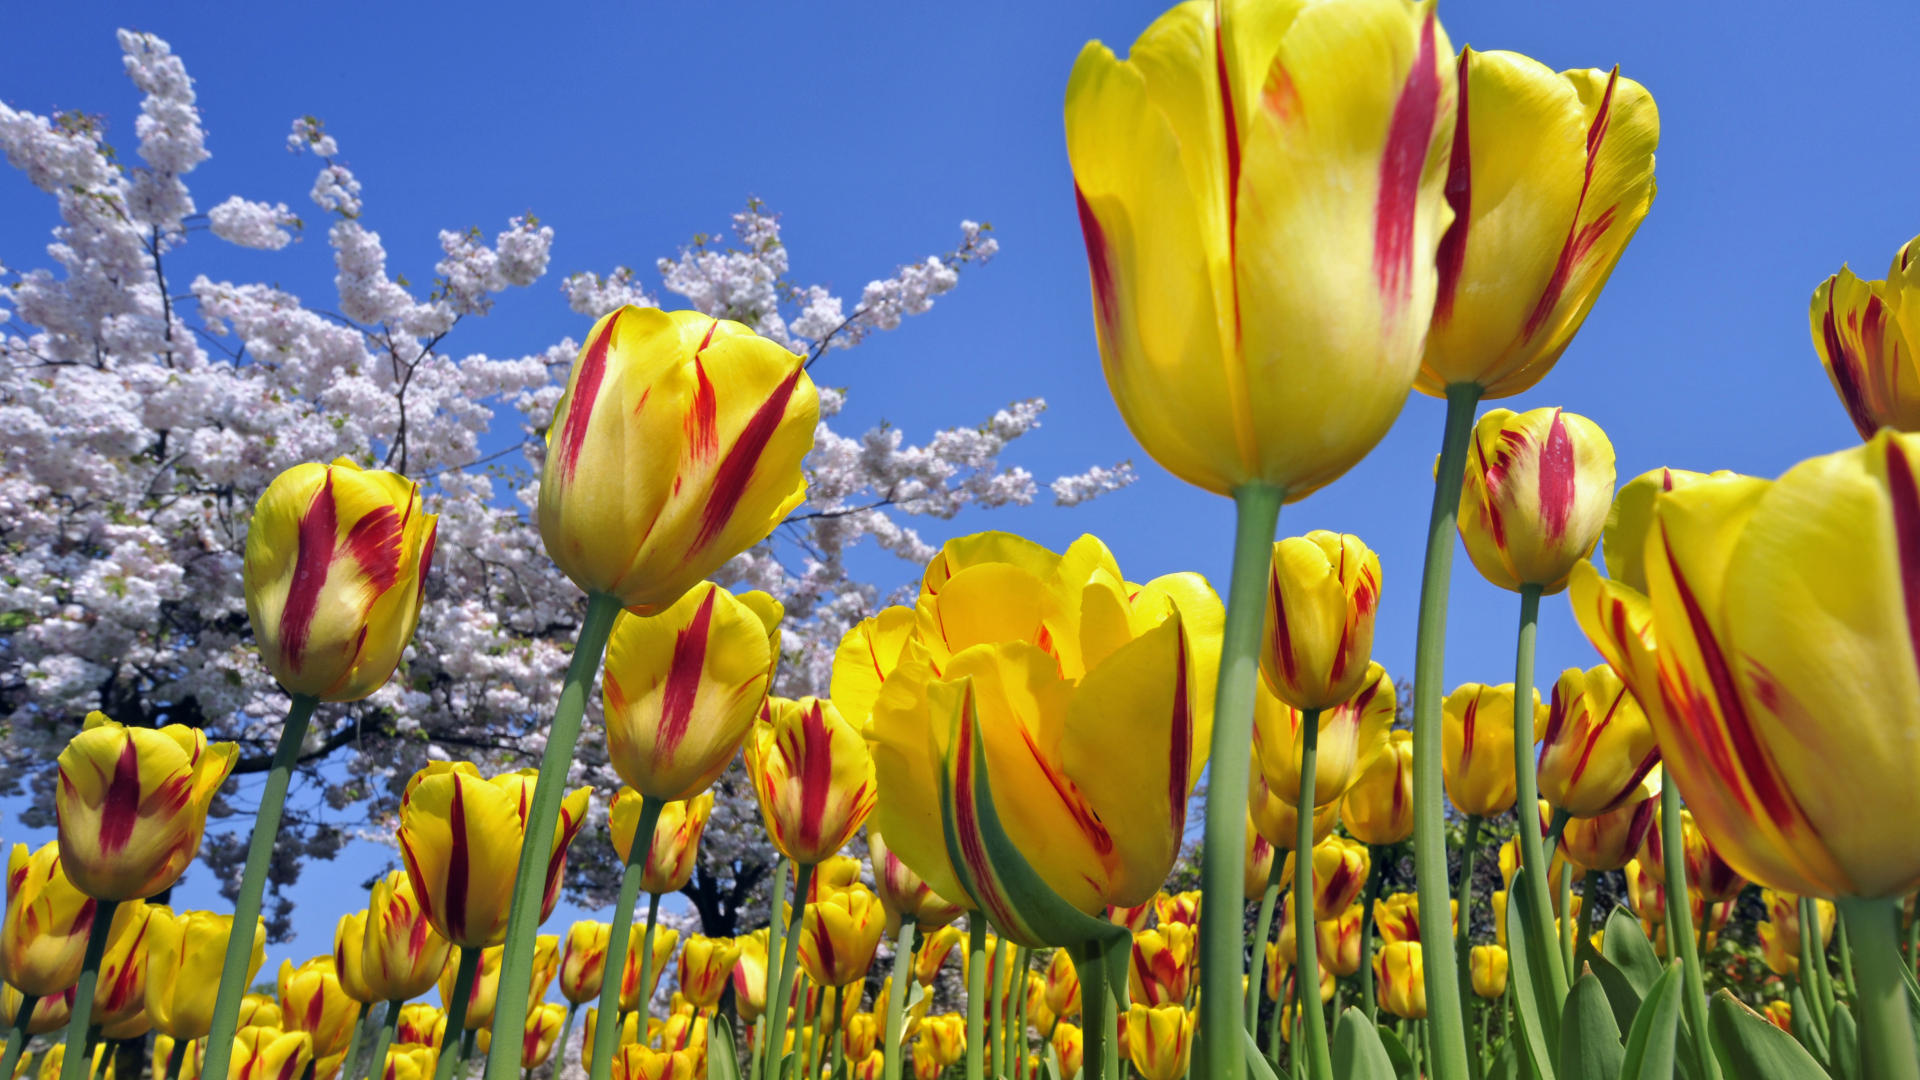 Spring Pictures - Wallpaper, High Definition, High Quality ...